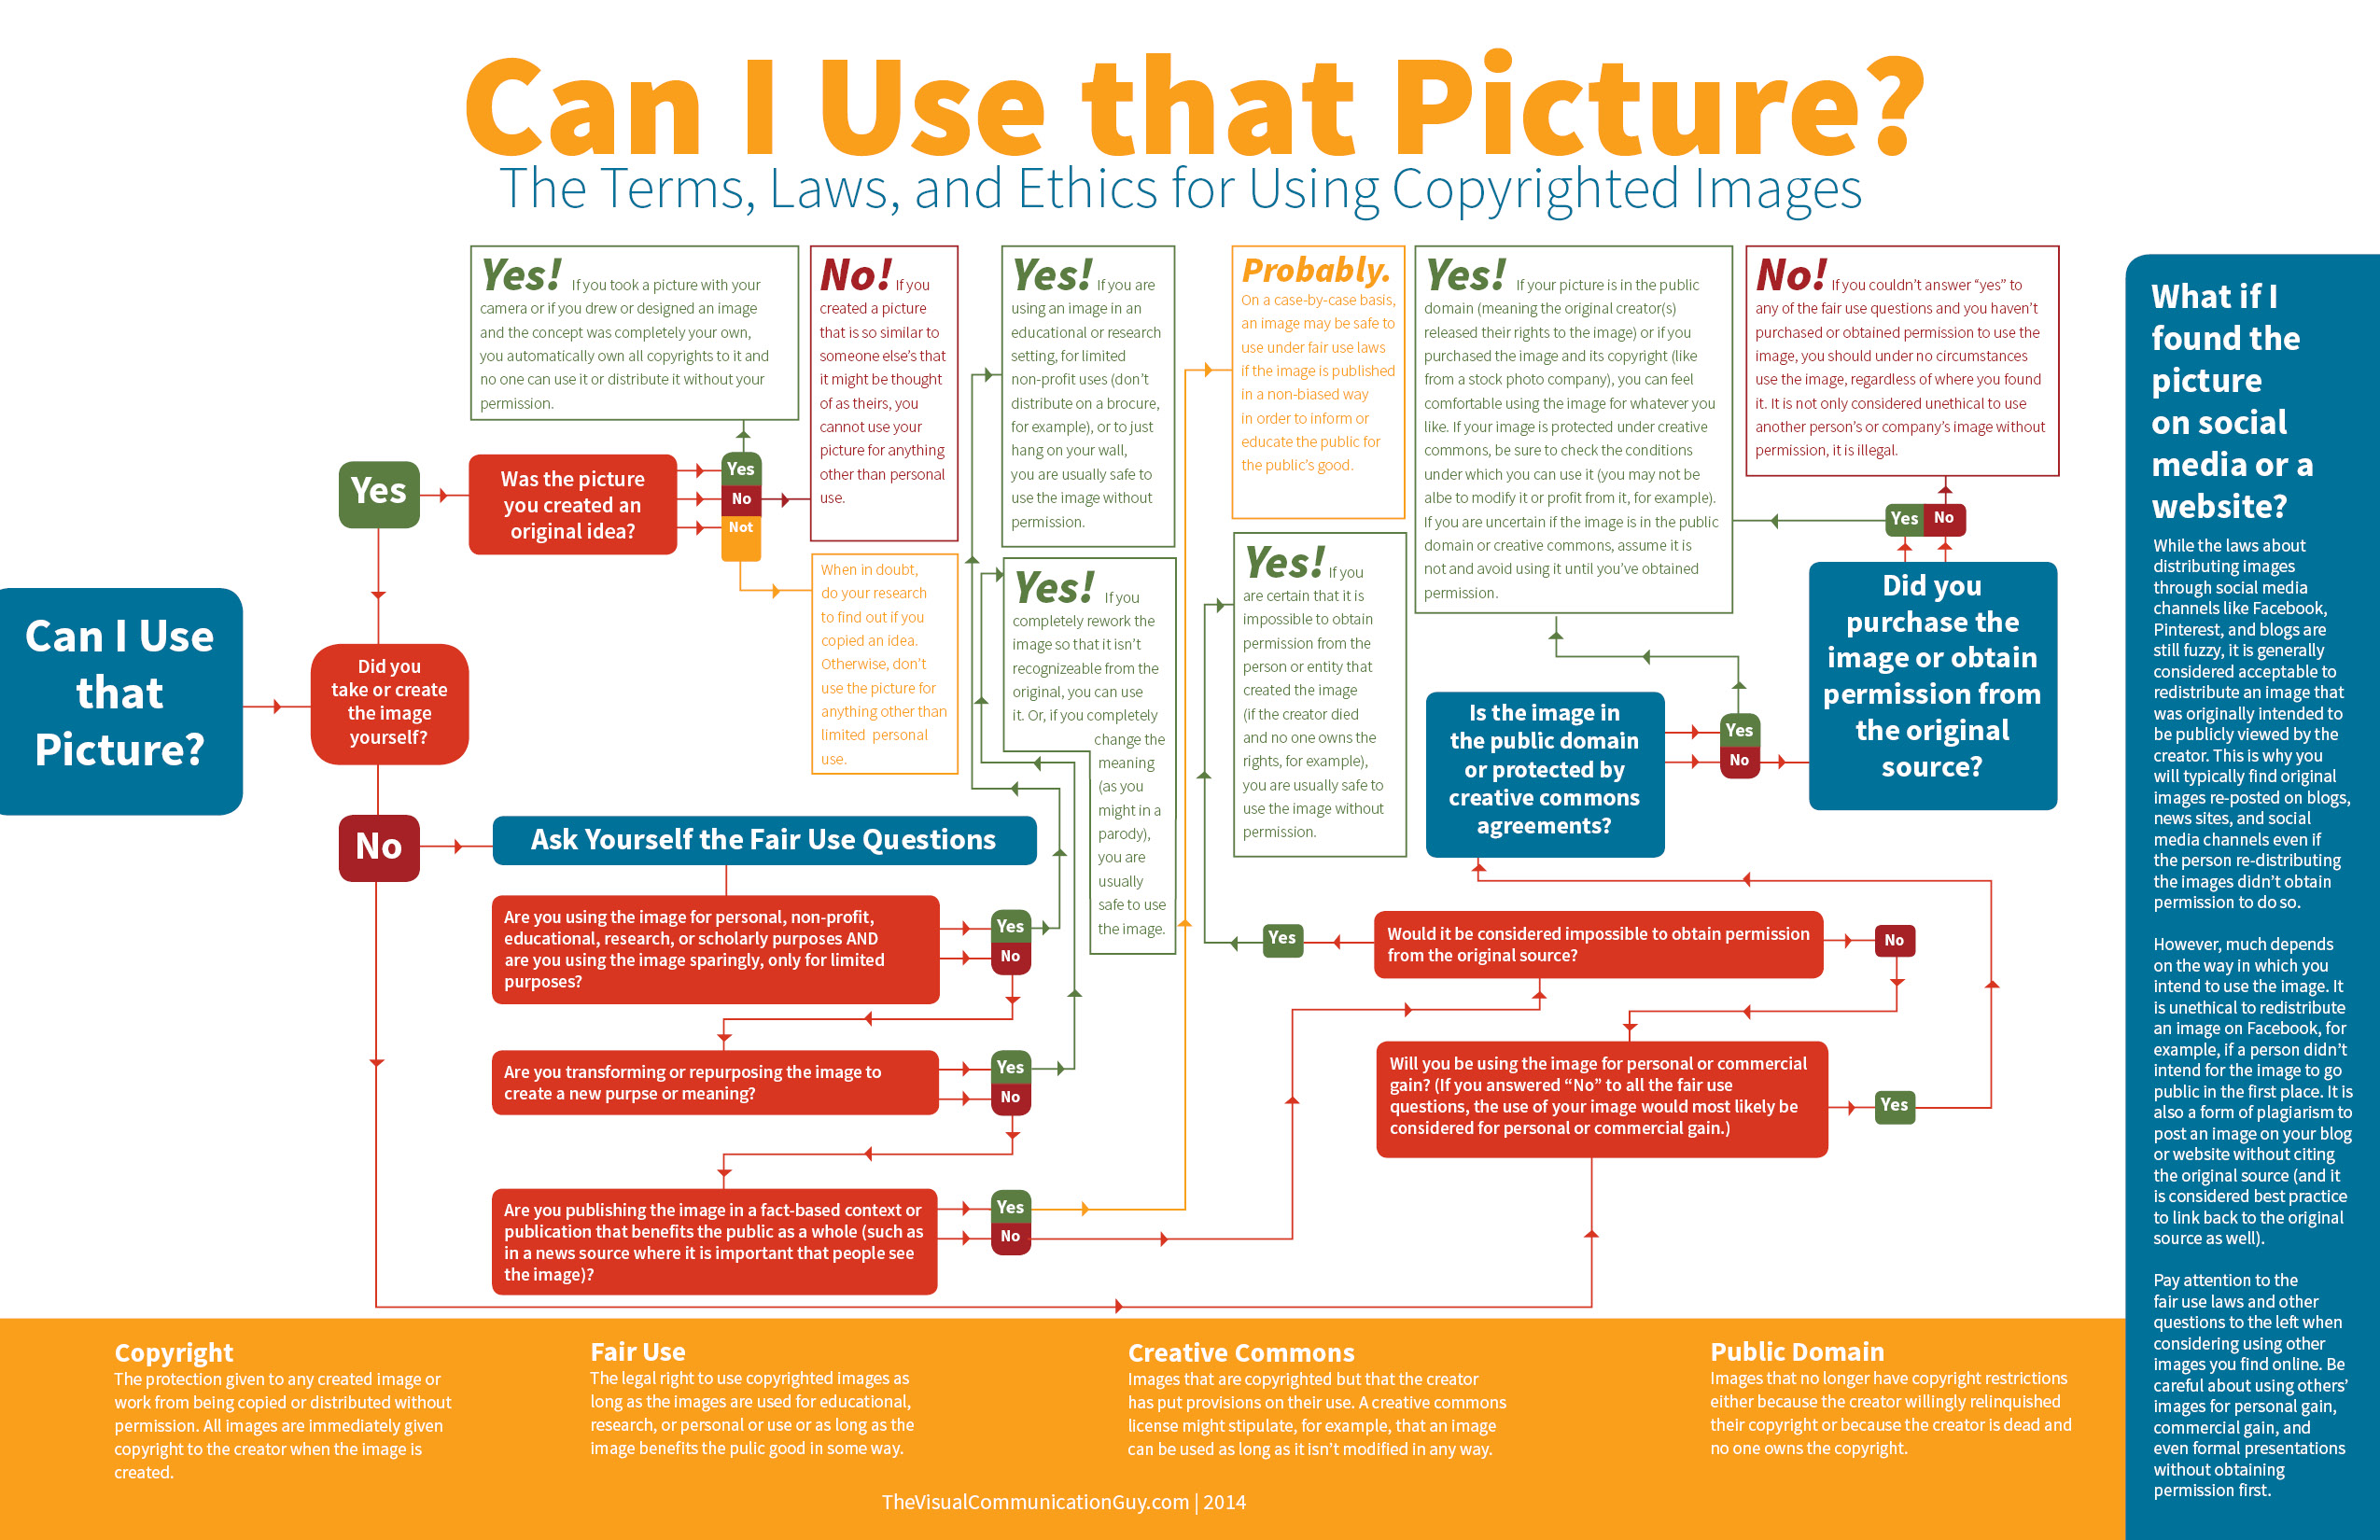 Can I Use that Picture? The Terms, Laws, and Ethics for Using